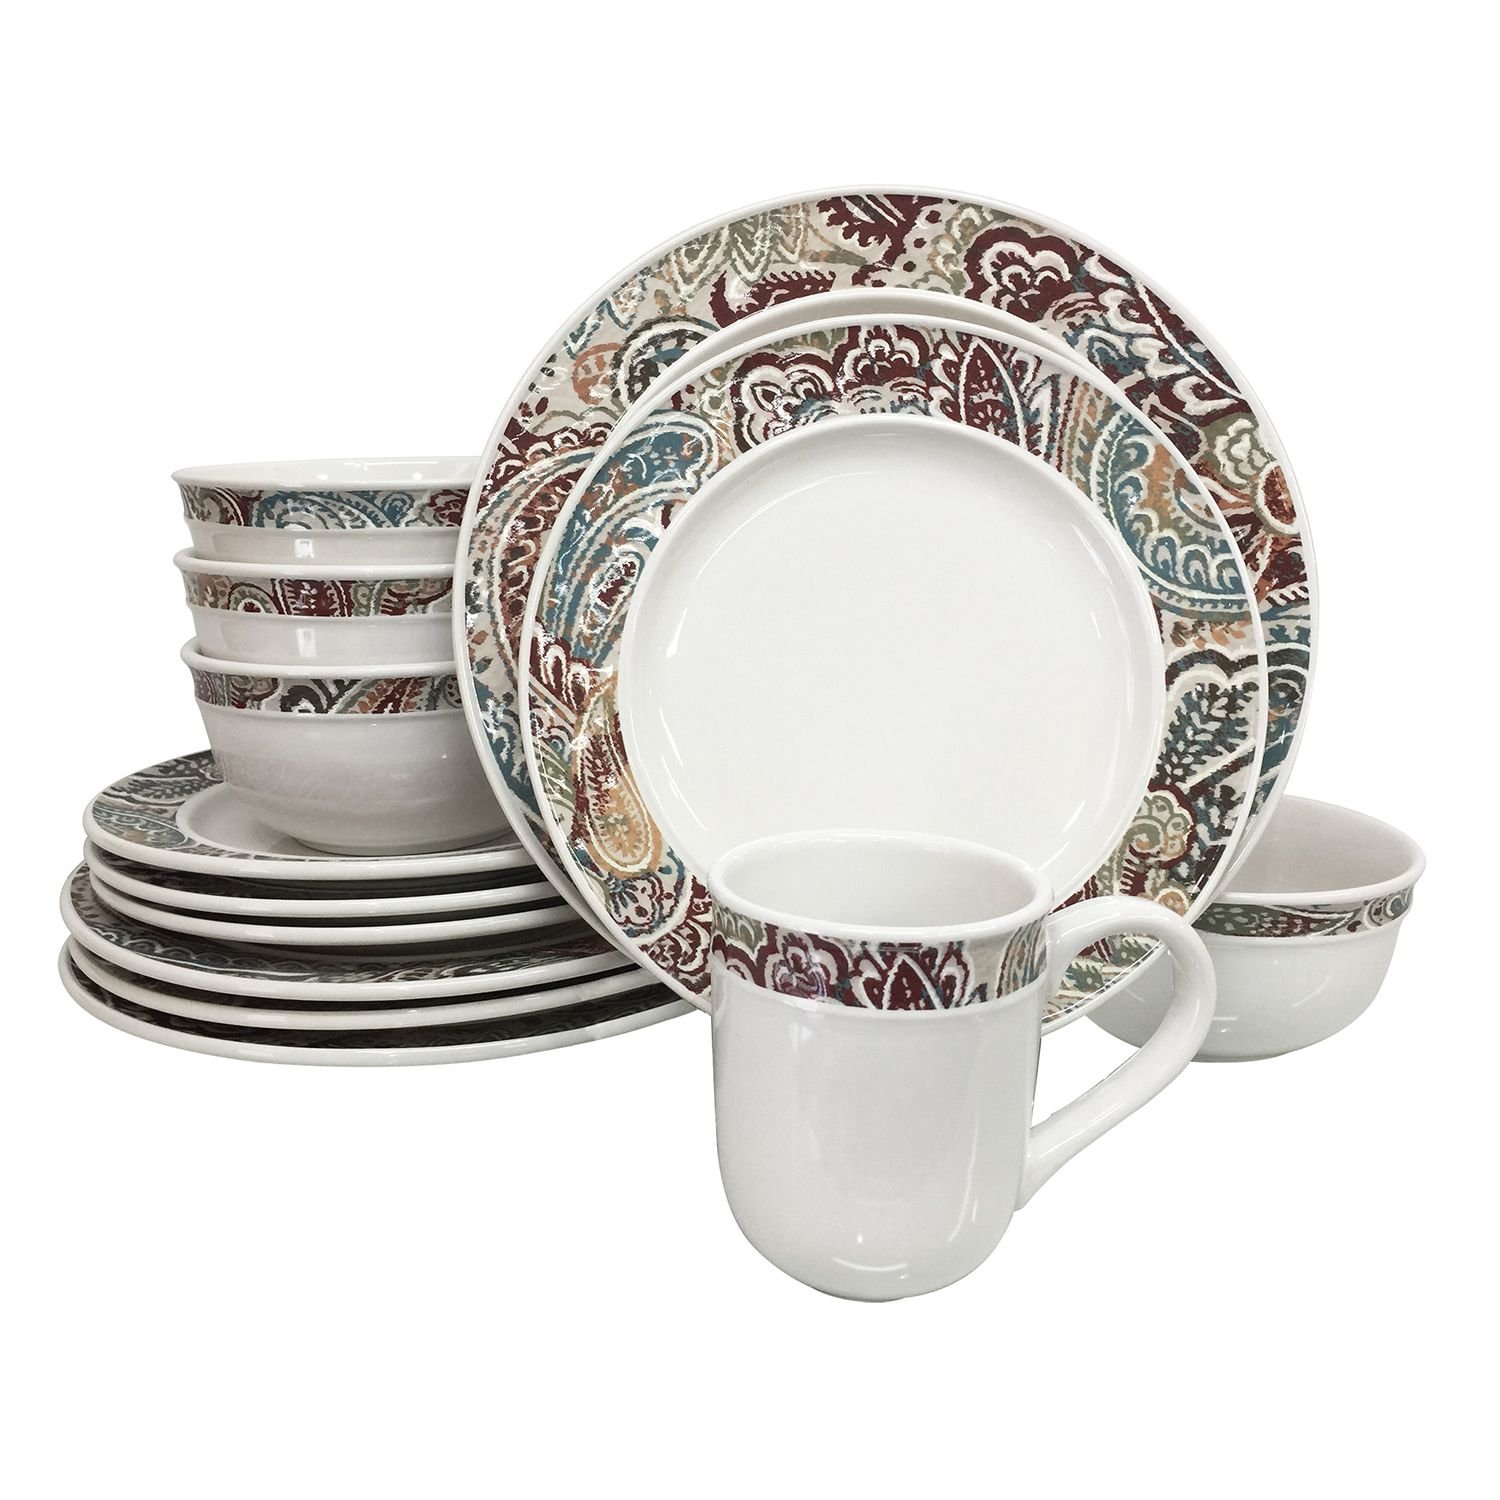 sc 1 st  Kohlu0027s & Food Network™ Paisley 16-pc. Dinnerware Set